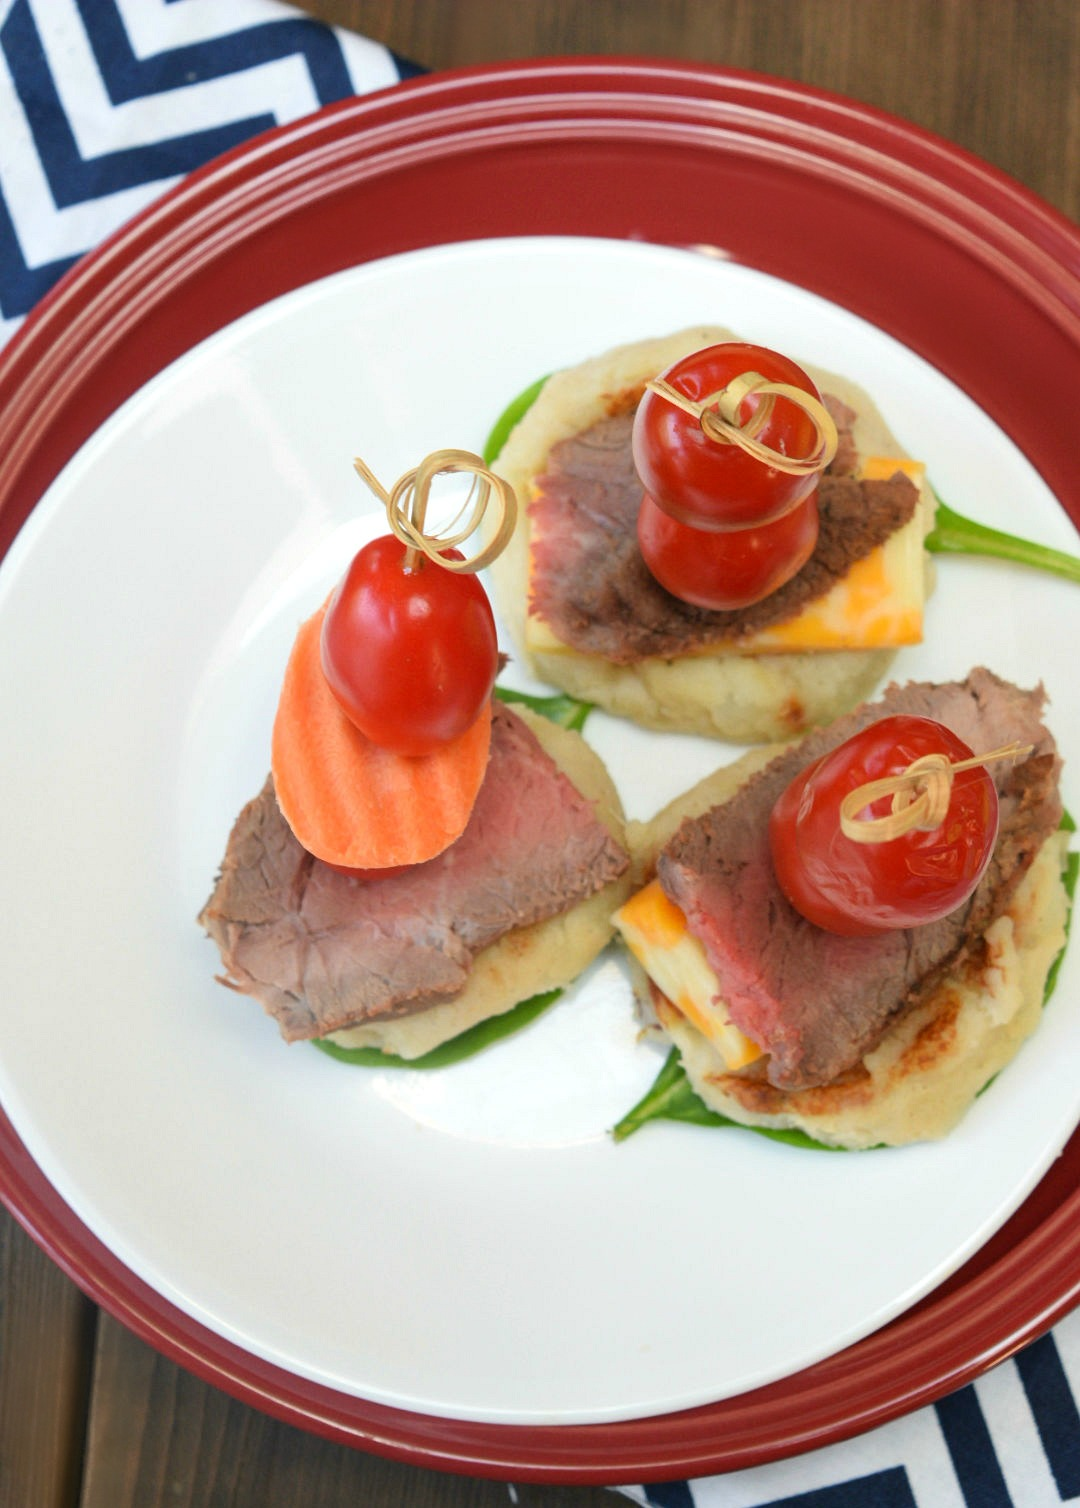 steak and potato bites on a plate